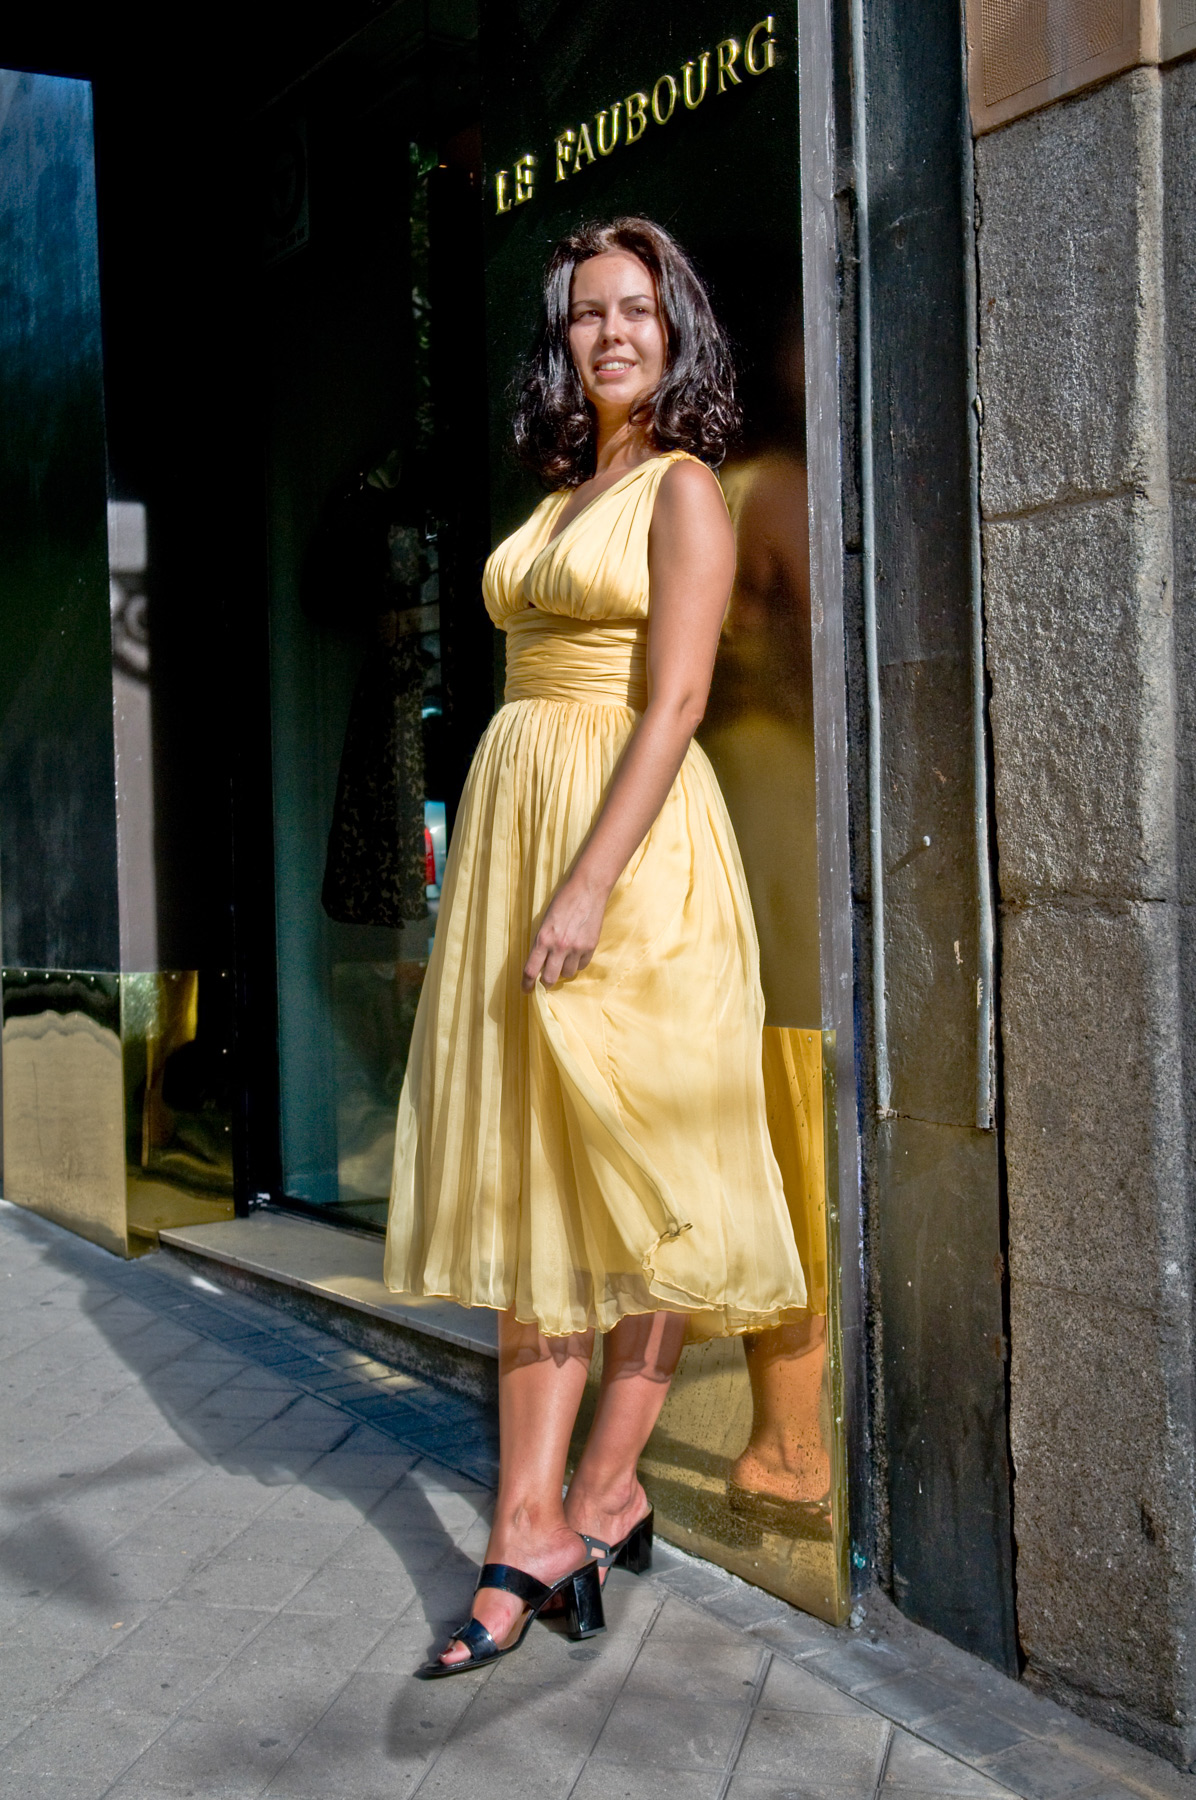 spanien_madrid_le-faubourg_second-hand_haute-couture_